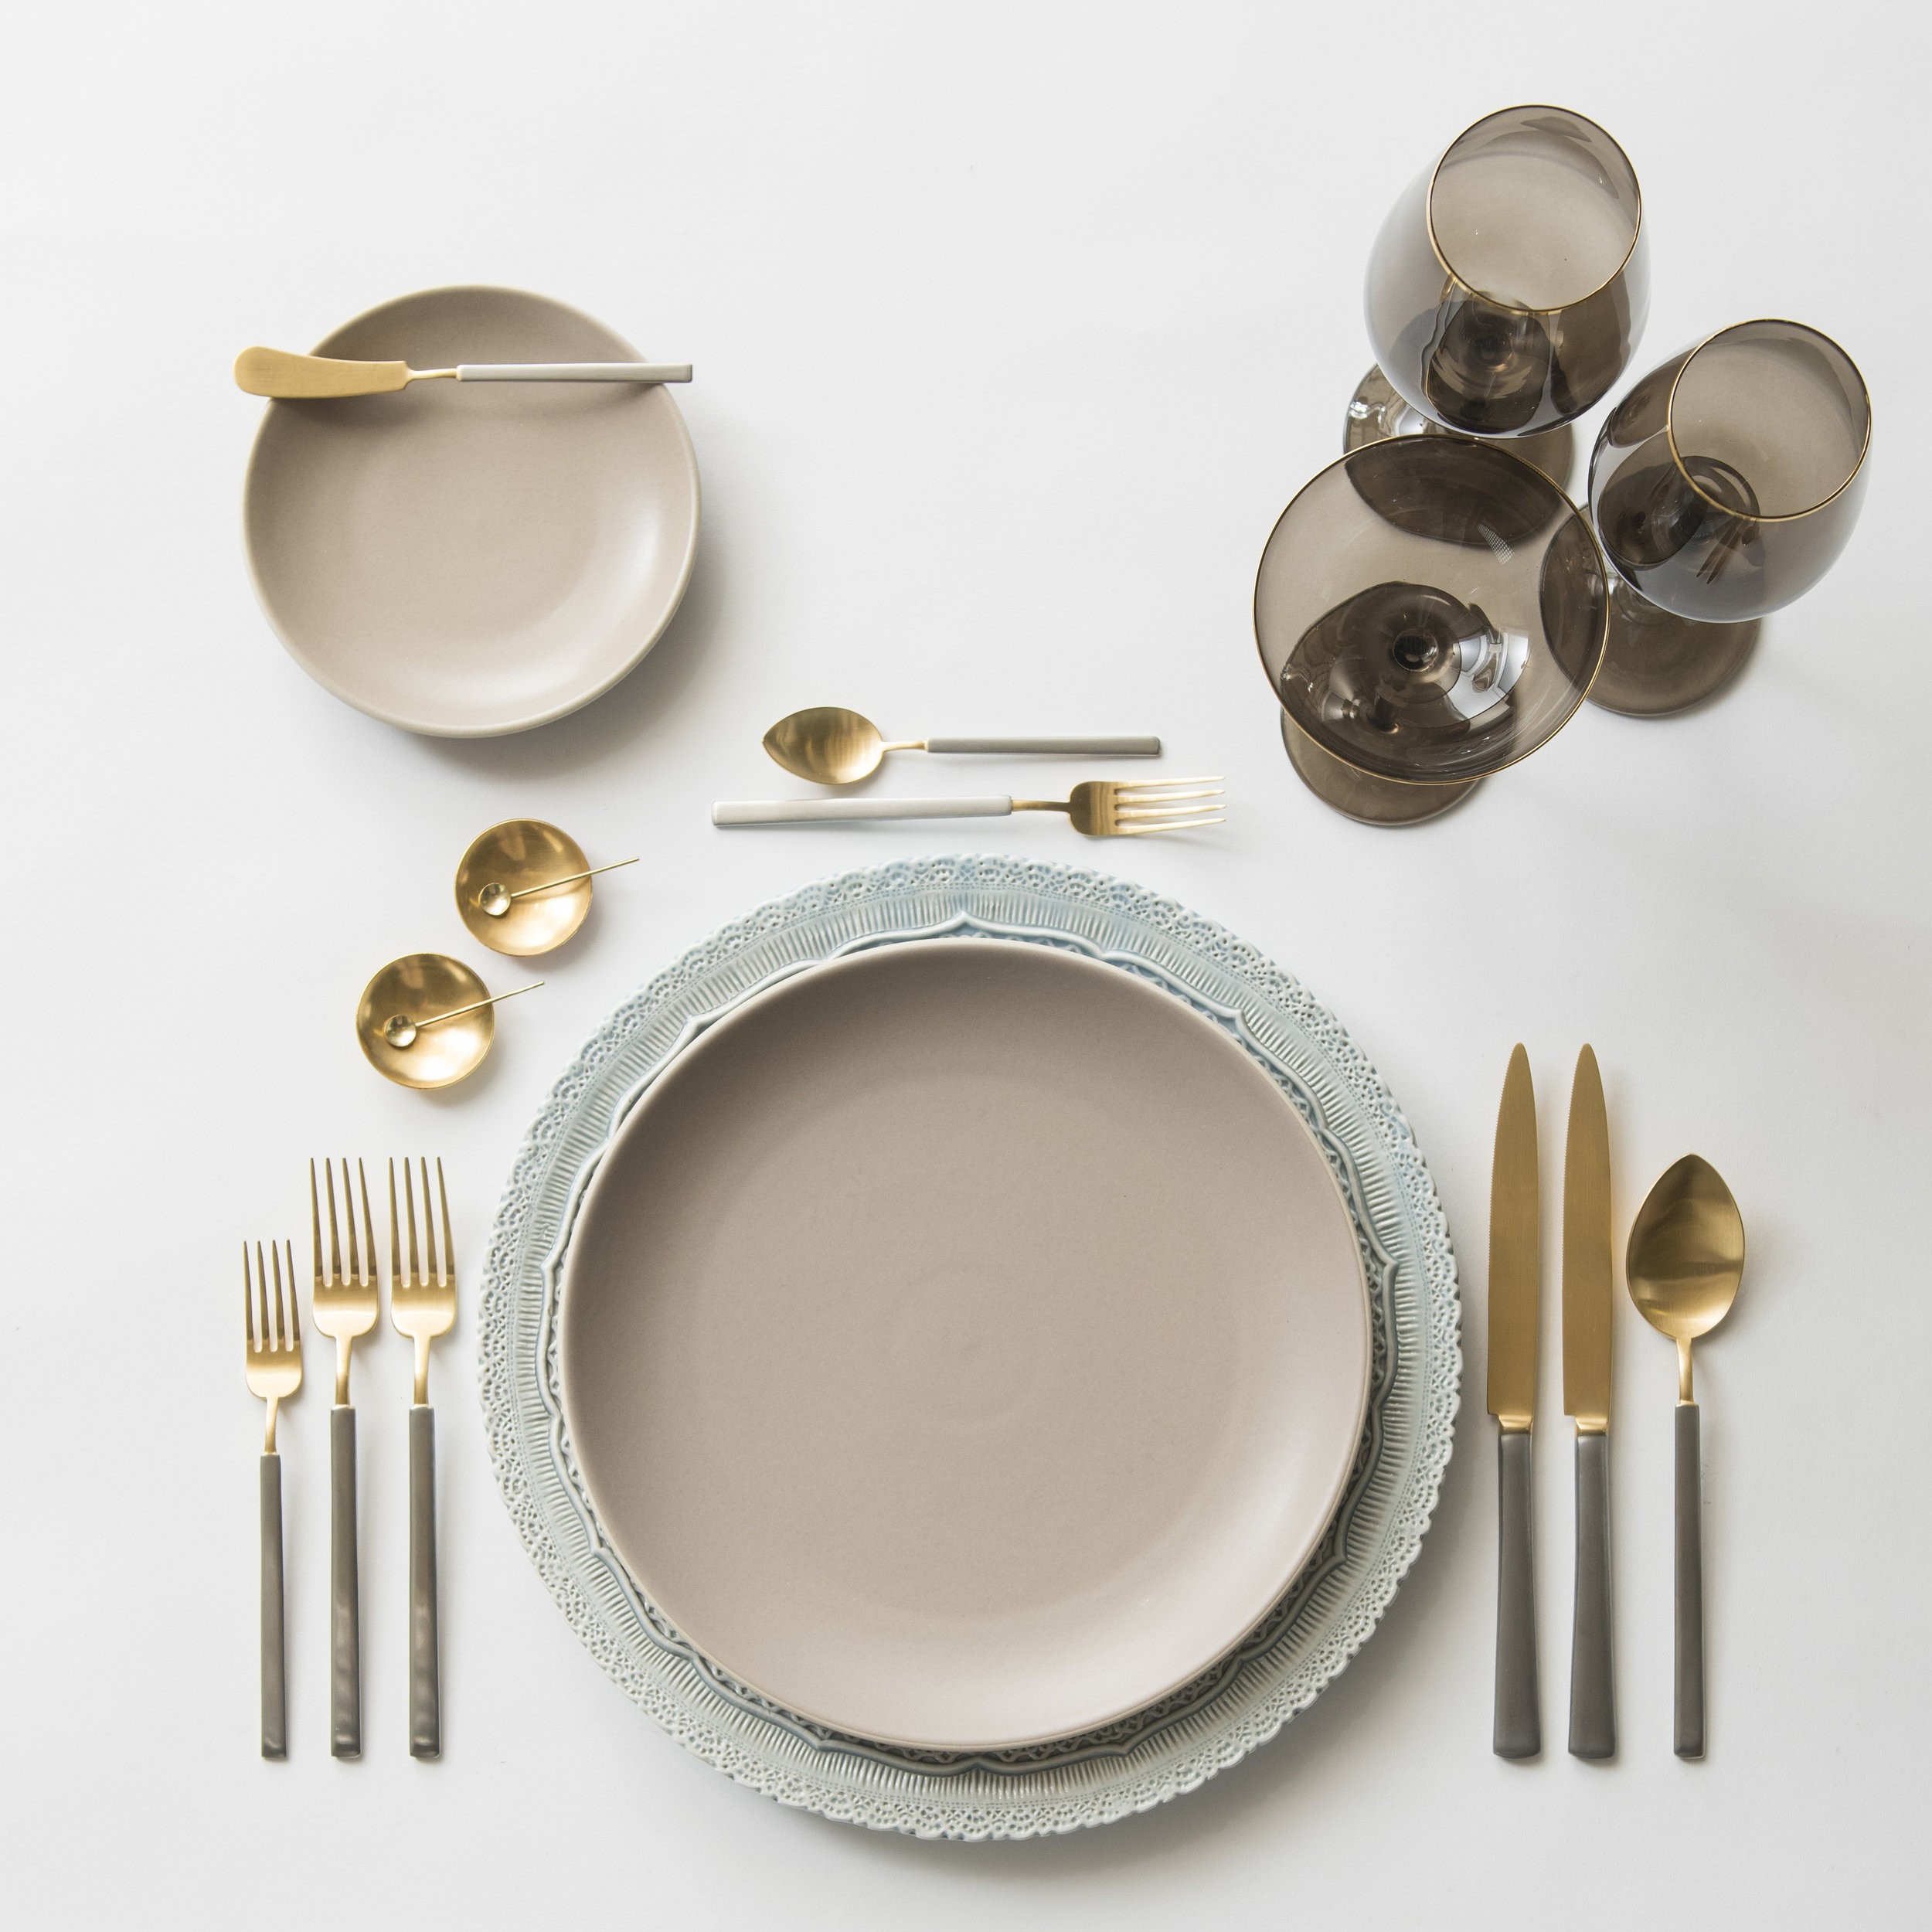 RENT: Lace Chargers in Dusty Blue + Heath Ceramics in French Grey + Axel Flatware in Matte 24k Gold/Silver + Bella 24k Gold Rimmed Stemware in Smoke + 14k Gold Salt Cellars + Tiny Gold Spoons  SHOP:Bella 24k Gold Rimmed Stemware in Smoke + 14k Gold Salt Cellars + Tiny Gold Spoons